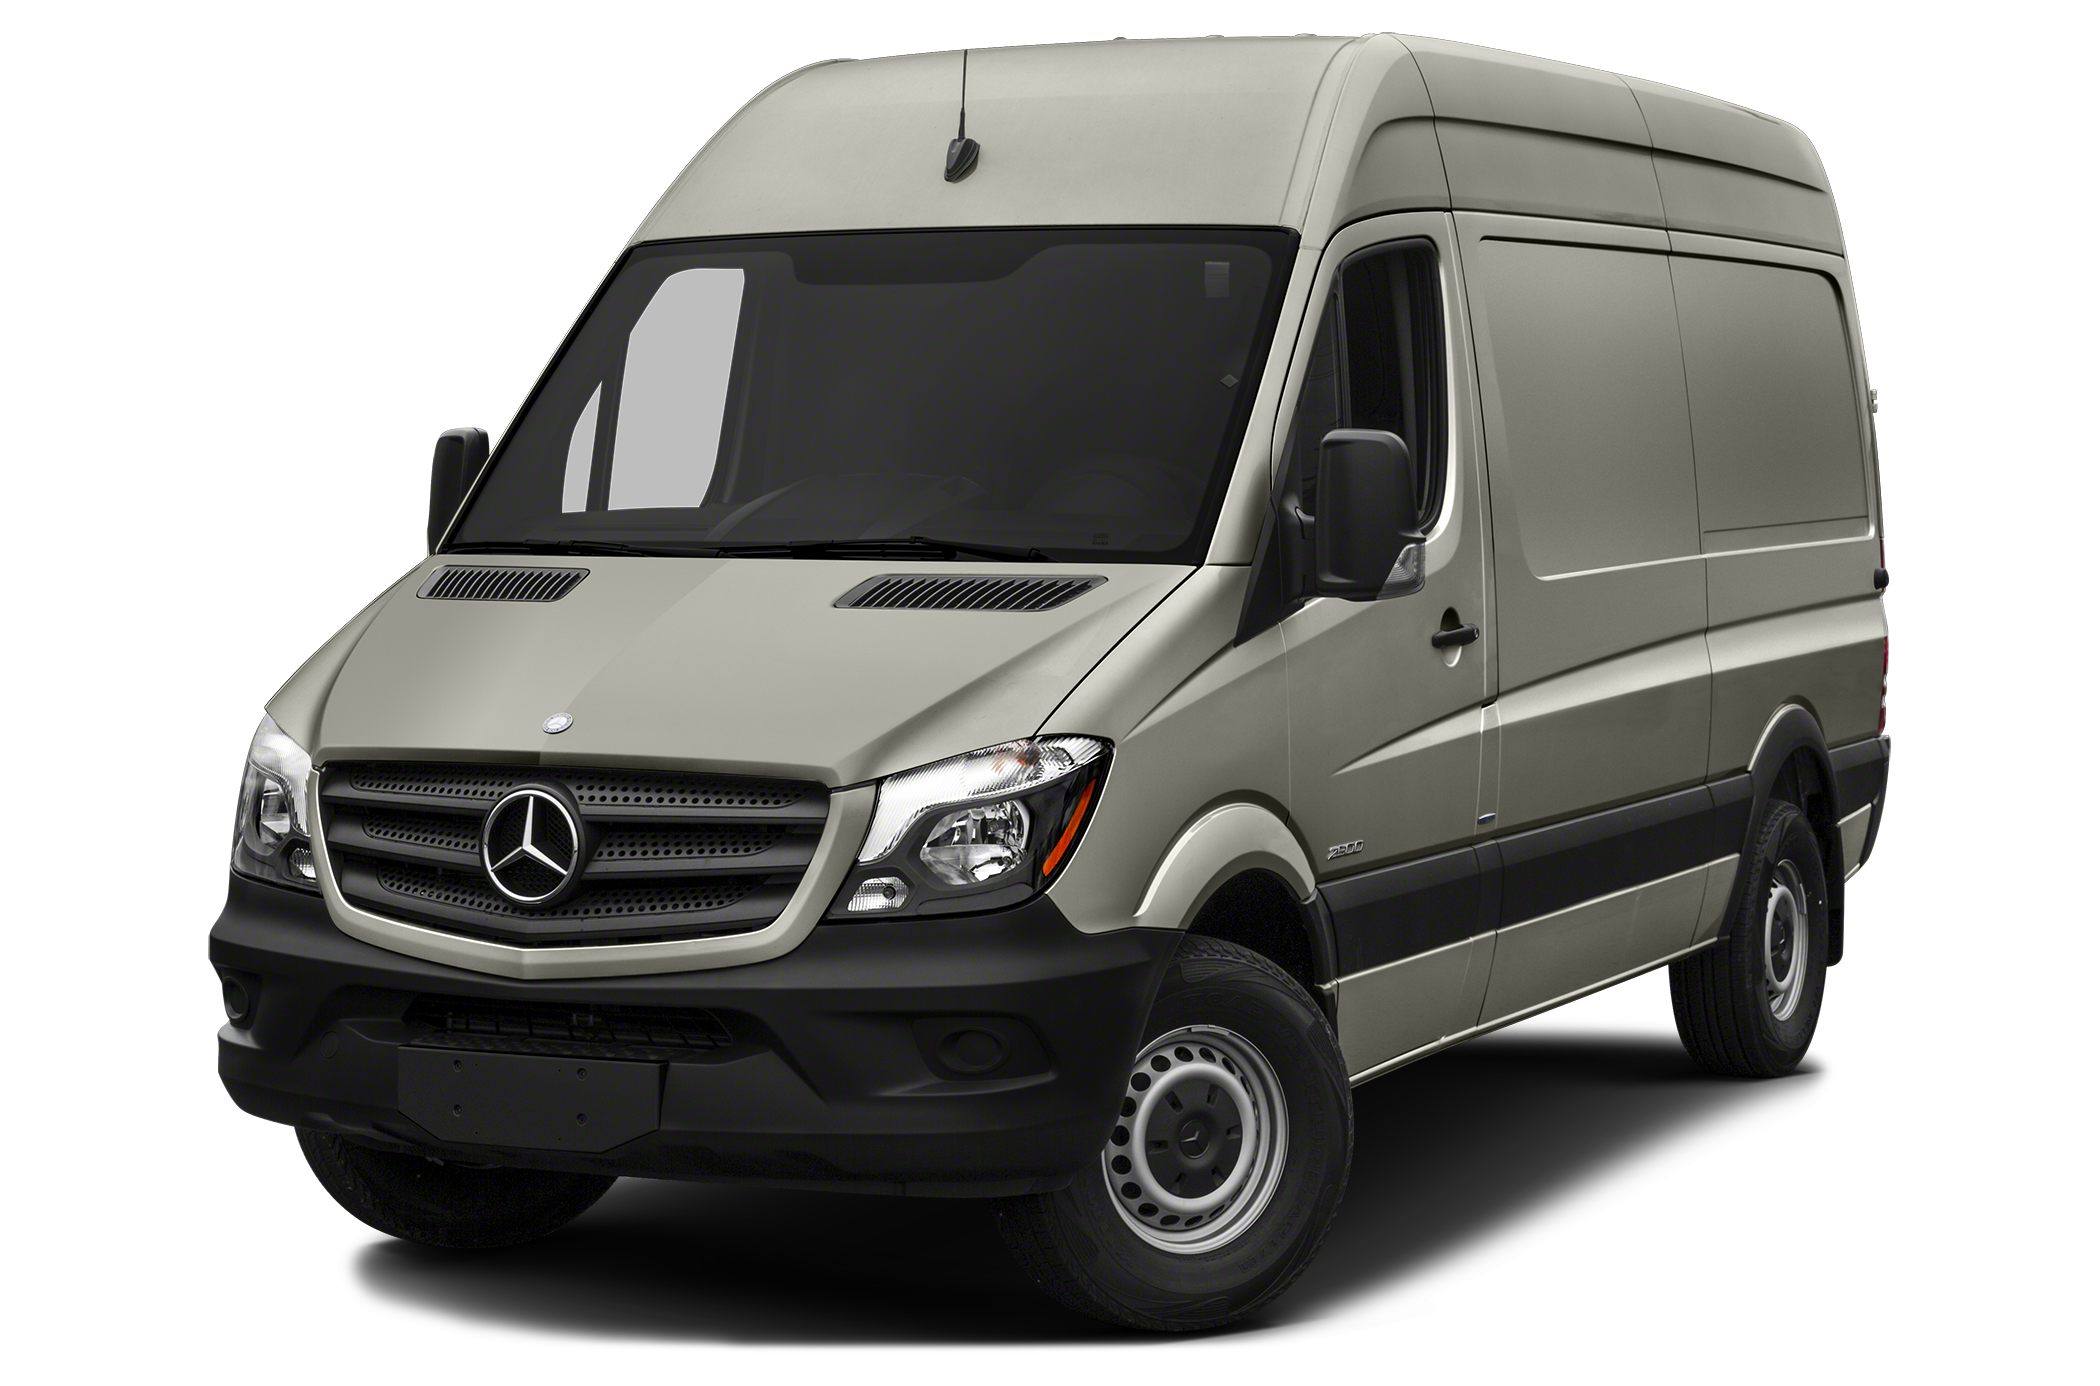 Mercedes benz sprinter news photos and buying information for Mercedes benz sprinter cargo van